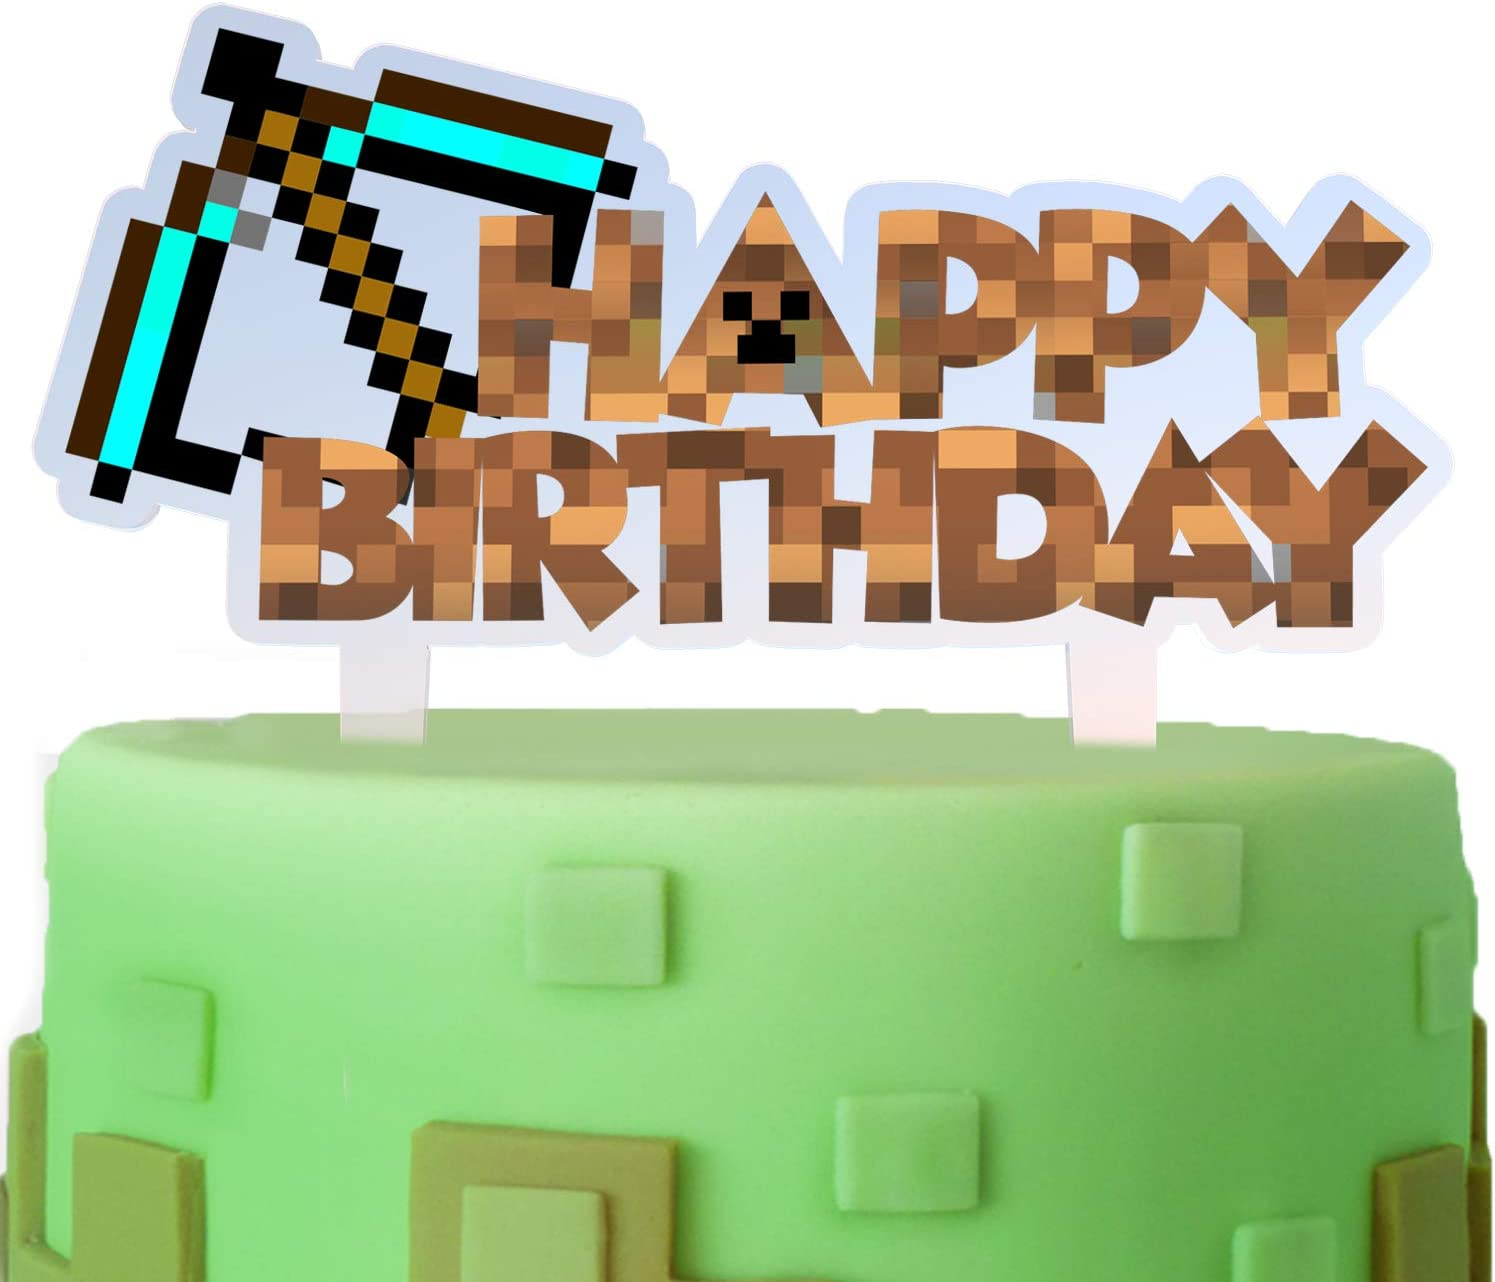 Arrow Cake Topper Happy Birthday Pixel Video Game Theme Decor for Baby Shower Birthday Party Decorations Supplies Acrylic